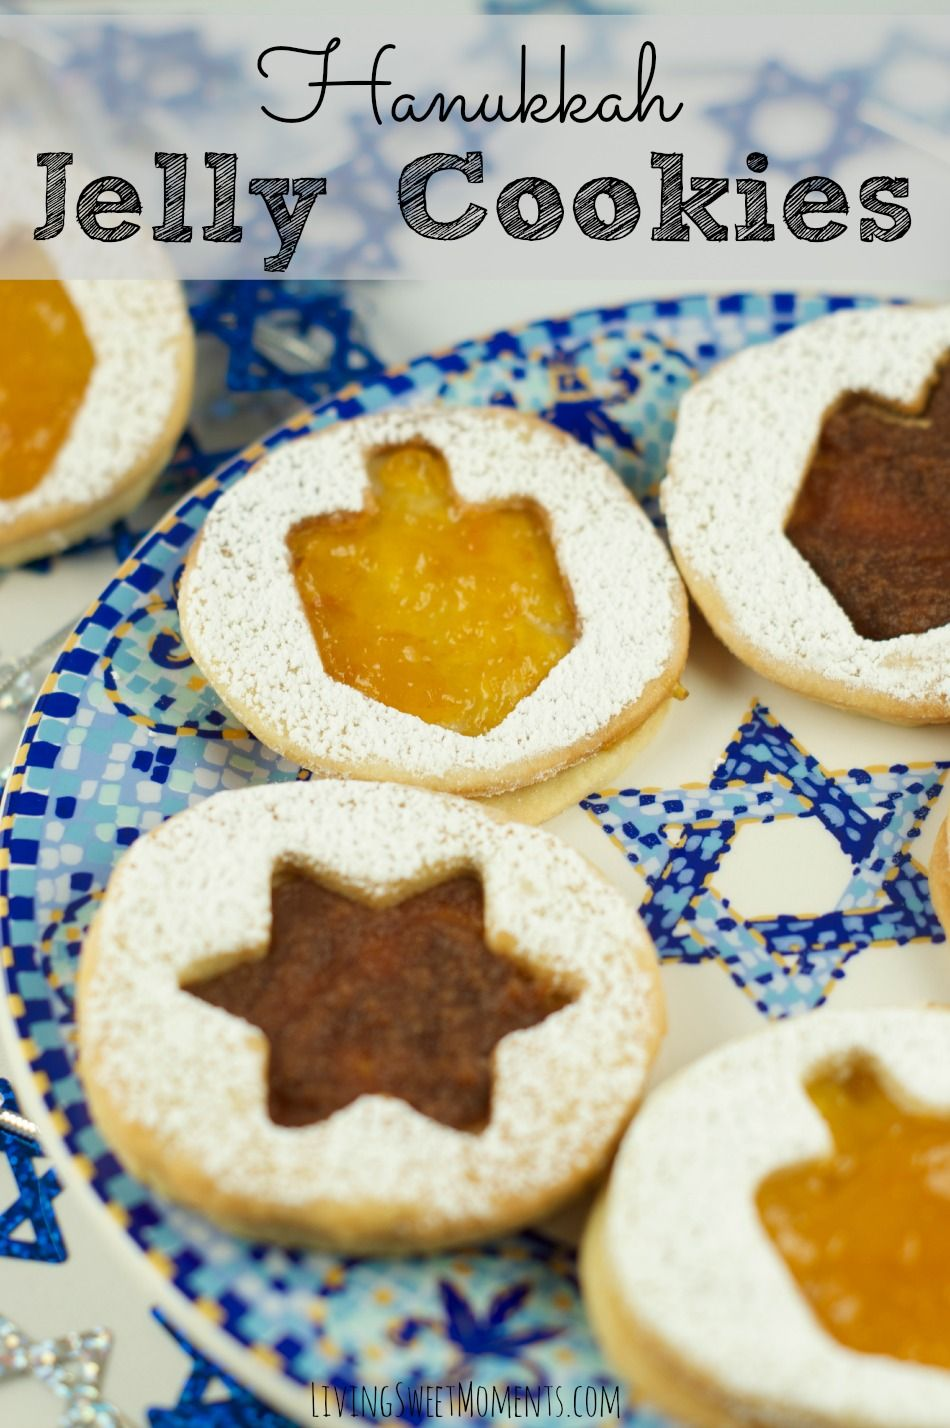 Hanukkah Jelly Cookie Recipe - Super delicious and festive Hanukkah Cookies filled with jelly, jam or whatever you may like! These are a must for the first night of Hanukkah!